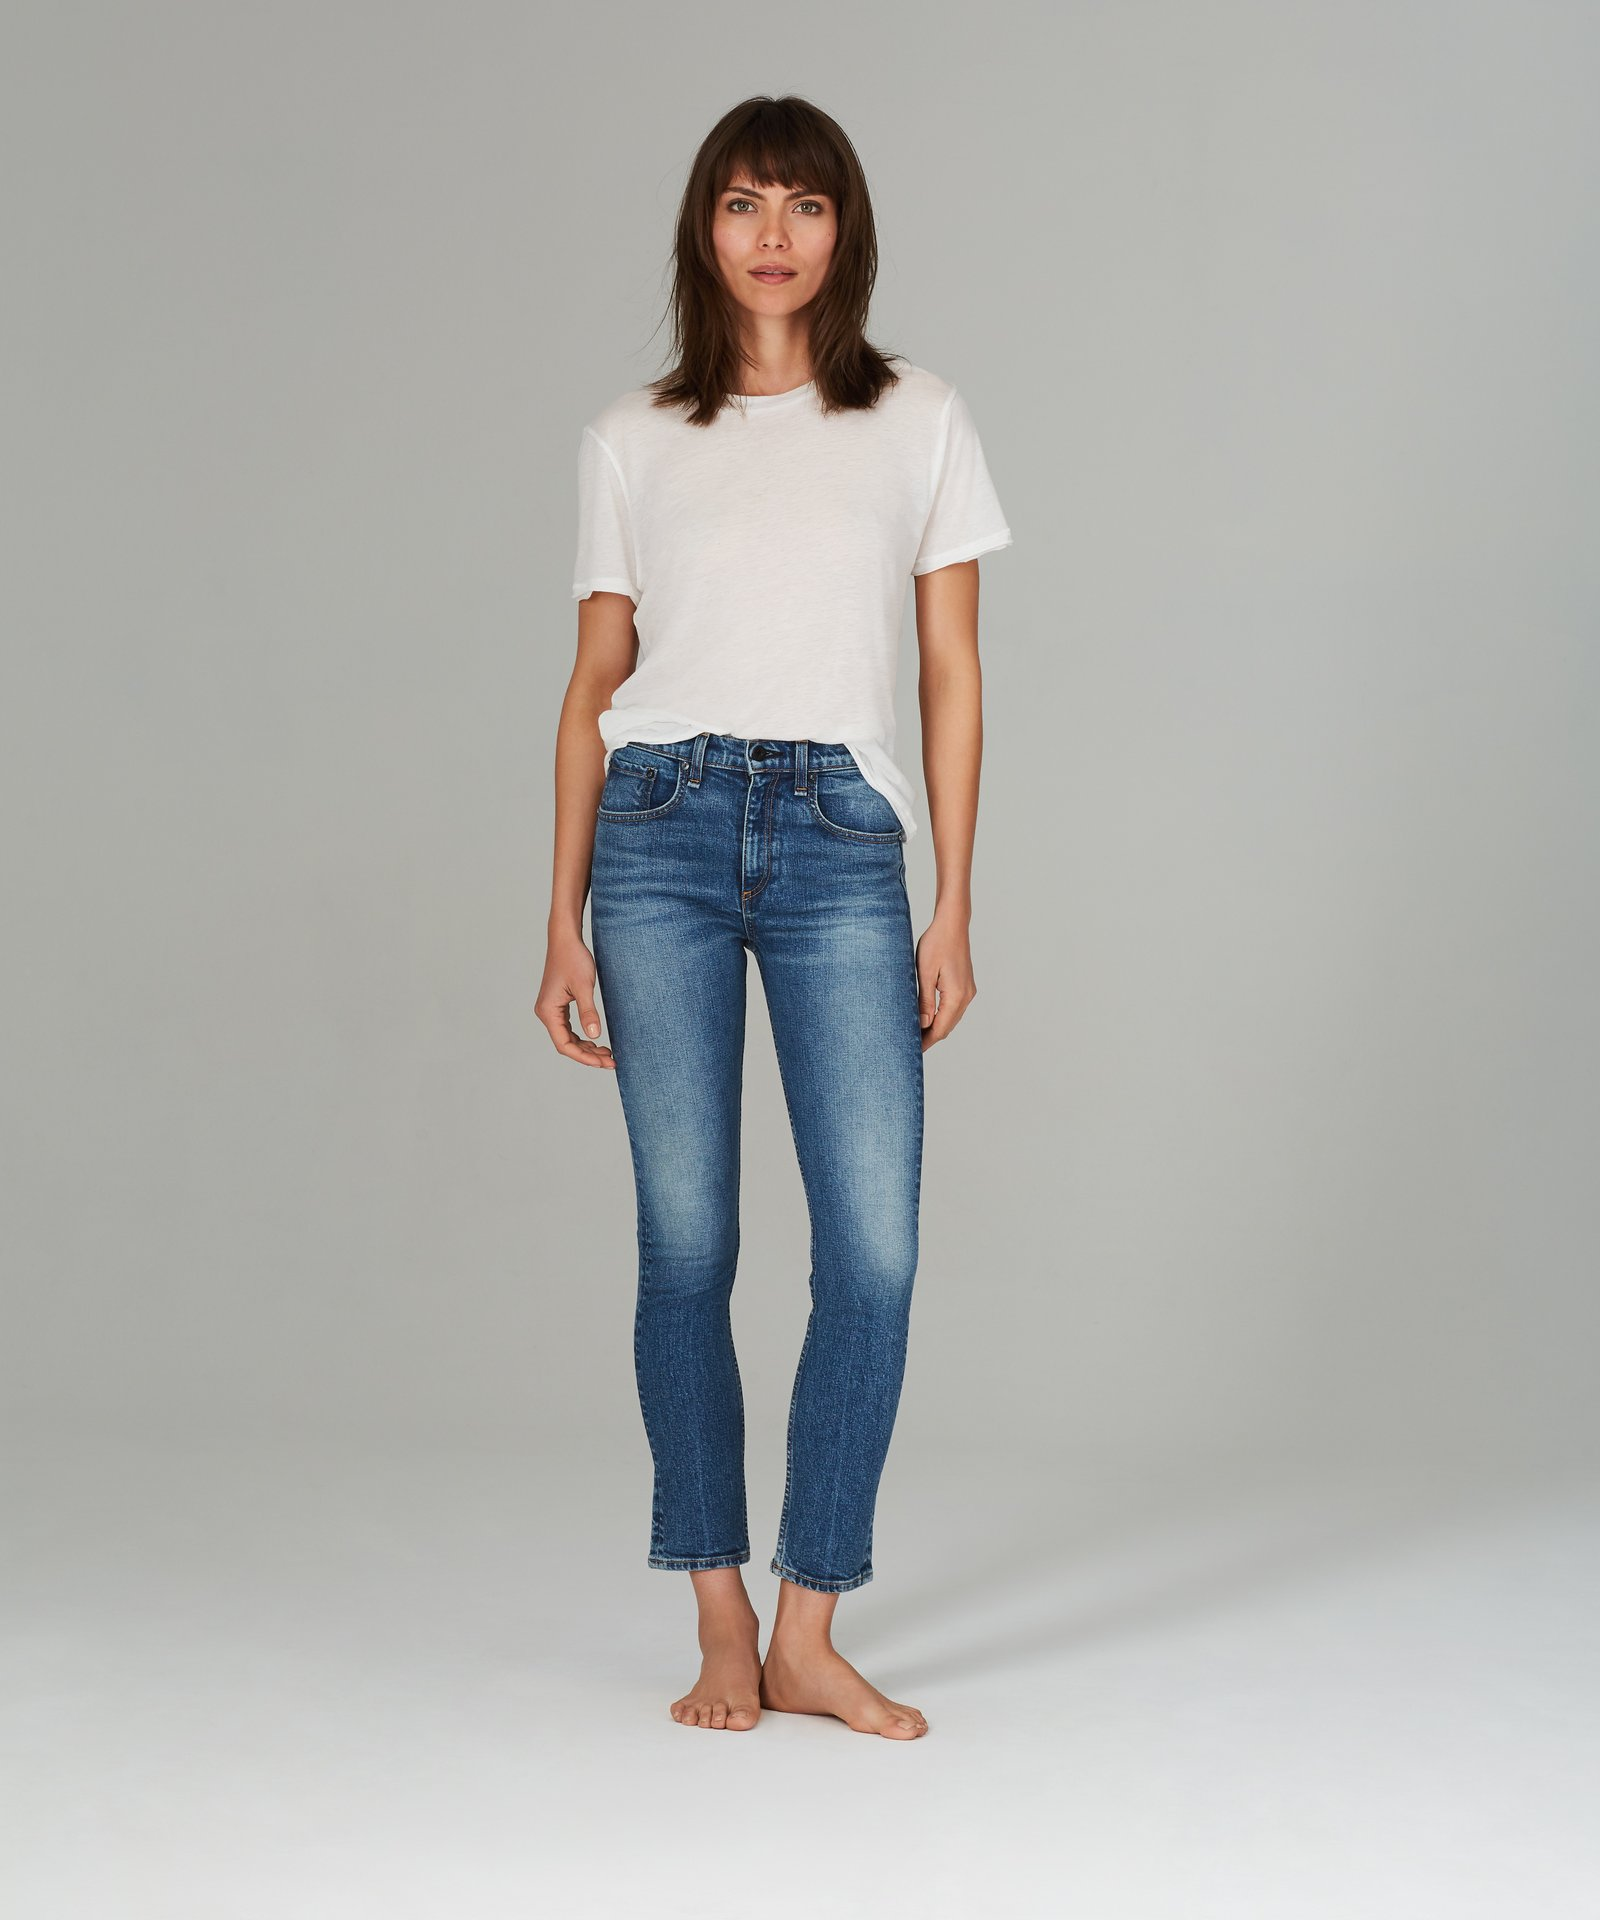 cropped jeans, skinny jeans, denim, medium wash, high rise, askk ny